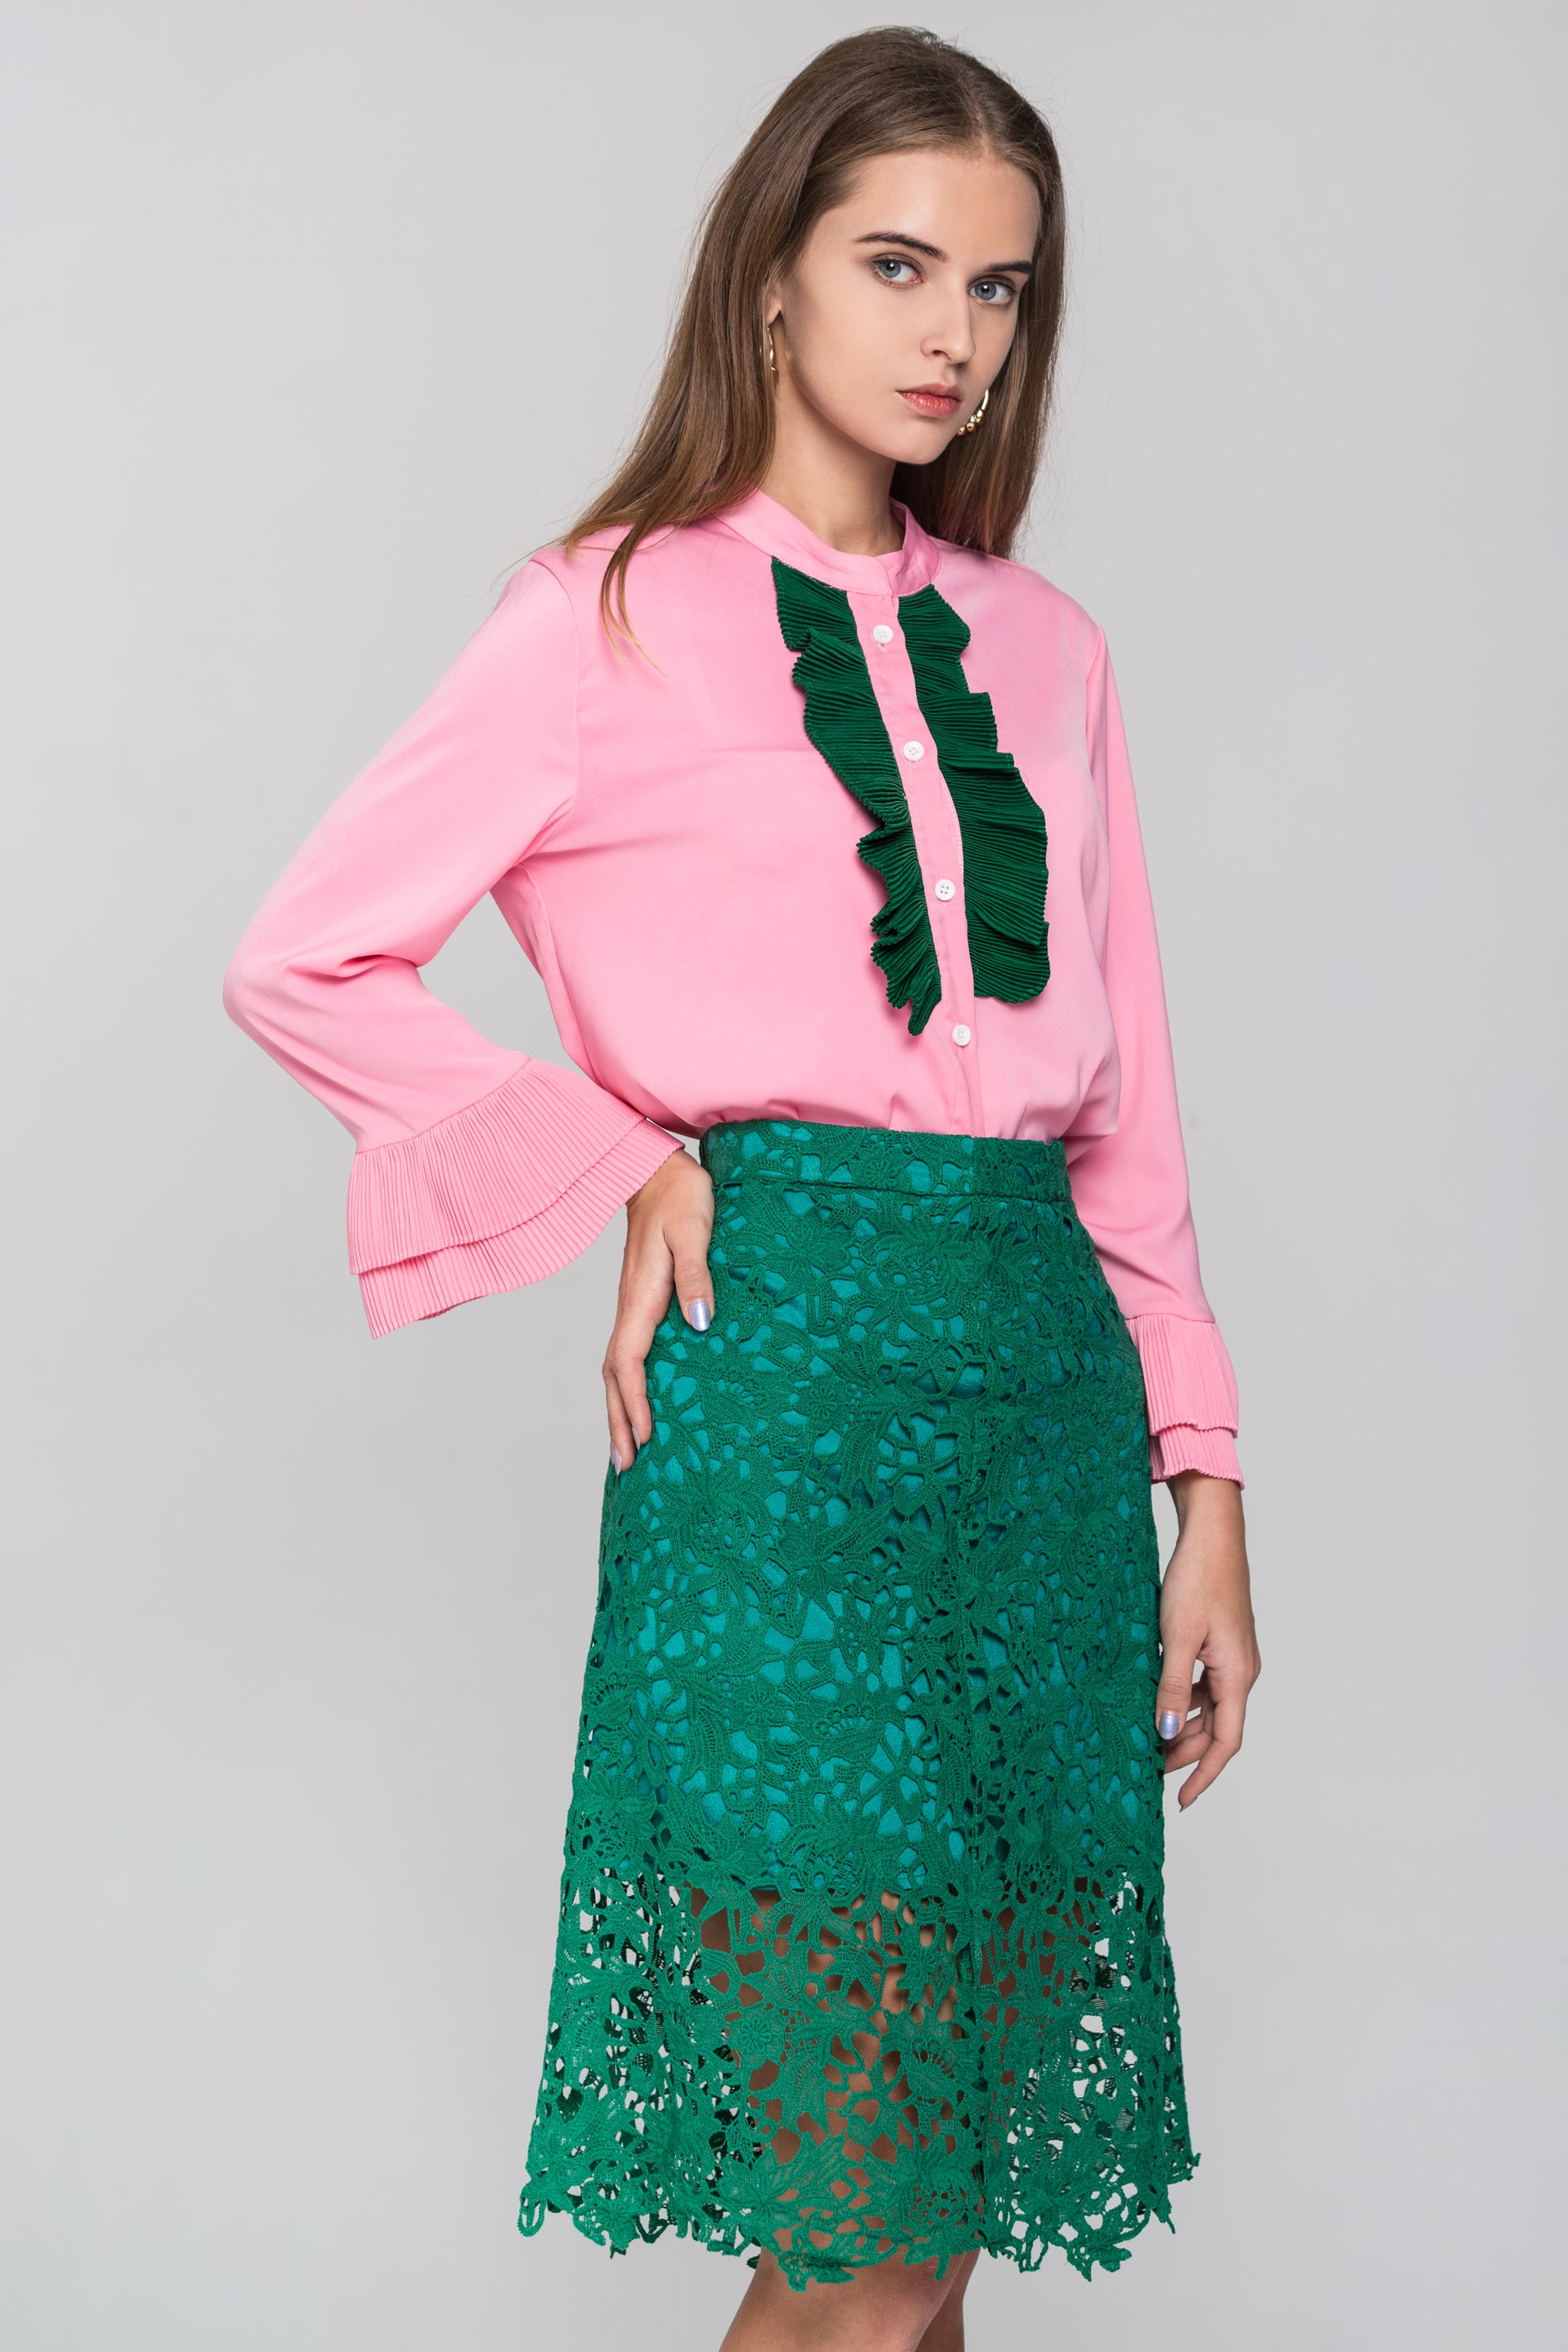 6d4f5061a70 Hover to zoom · Pink and Green Ruffle Front and Lace Skirt Set